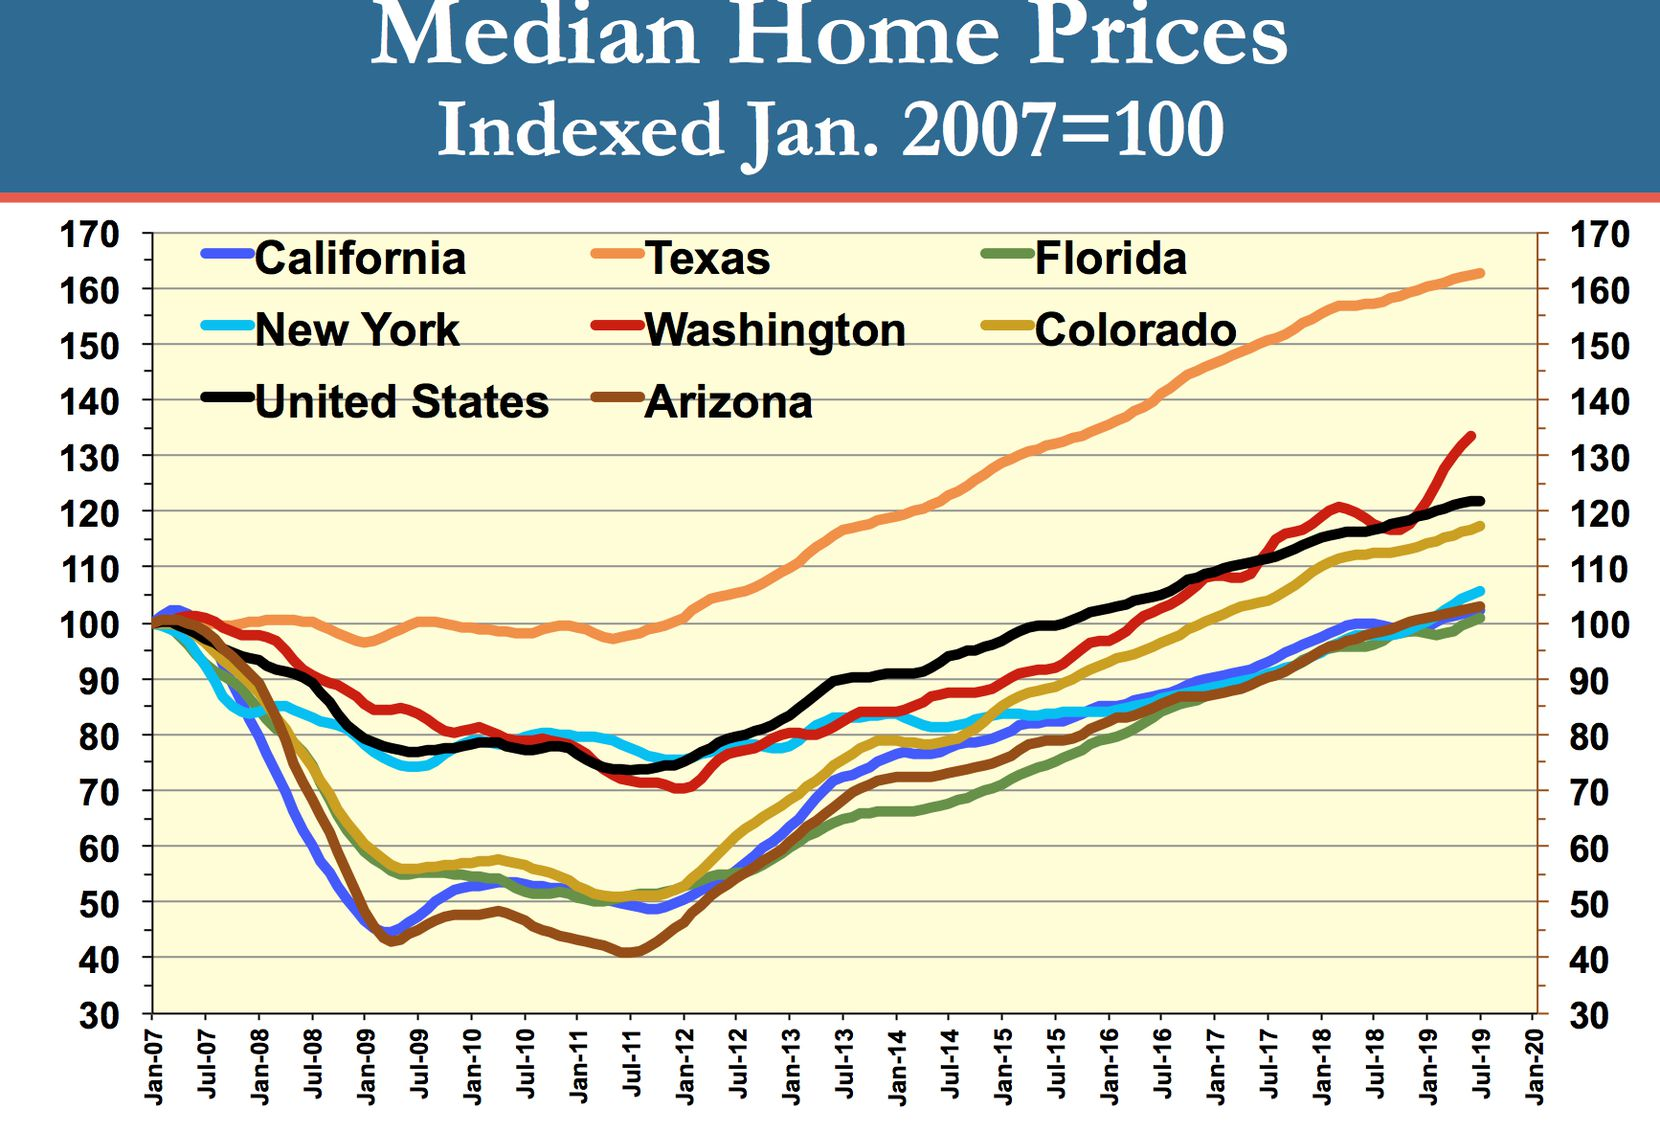 Texas home price growth has outpaced other states.